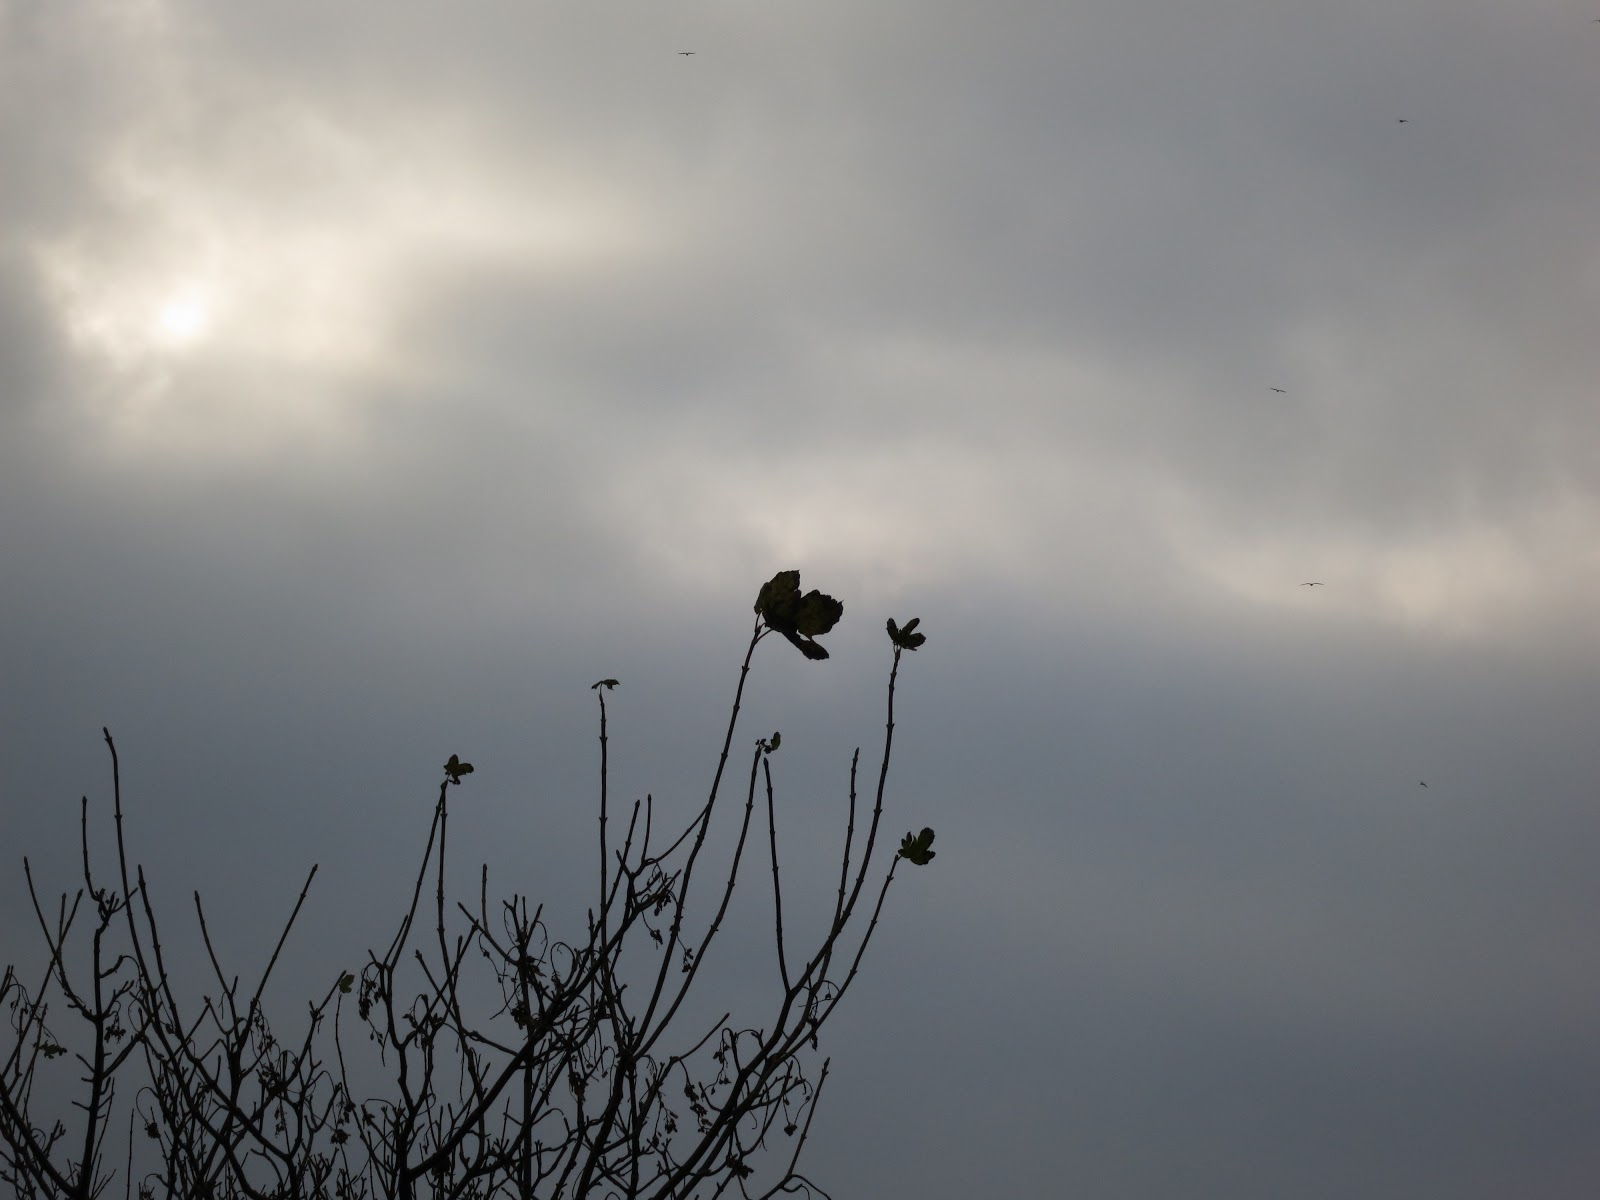 One large and several small leaves of the tree silhouetted against a grey sky